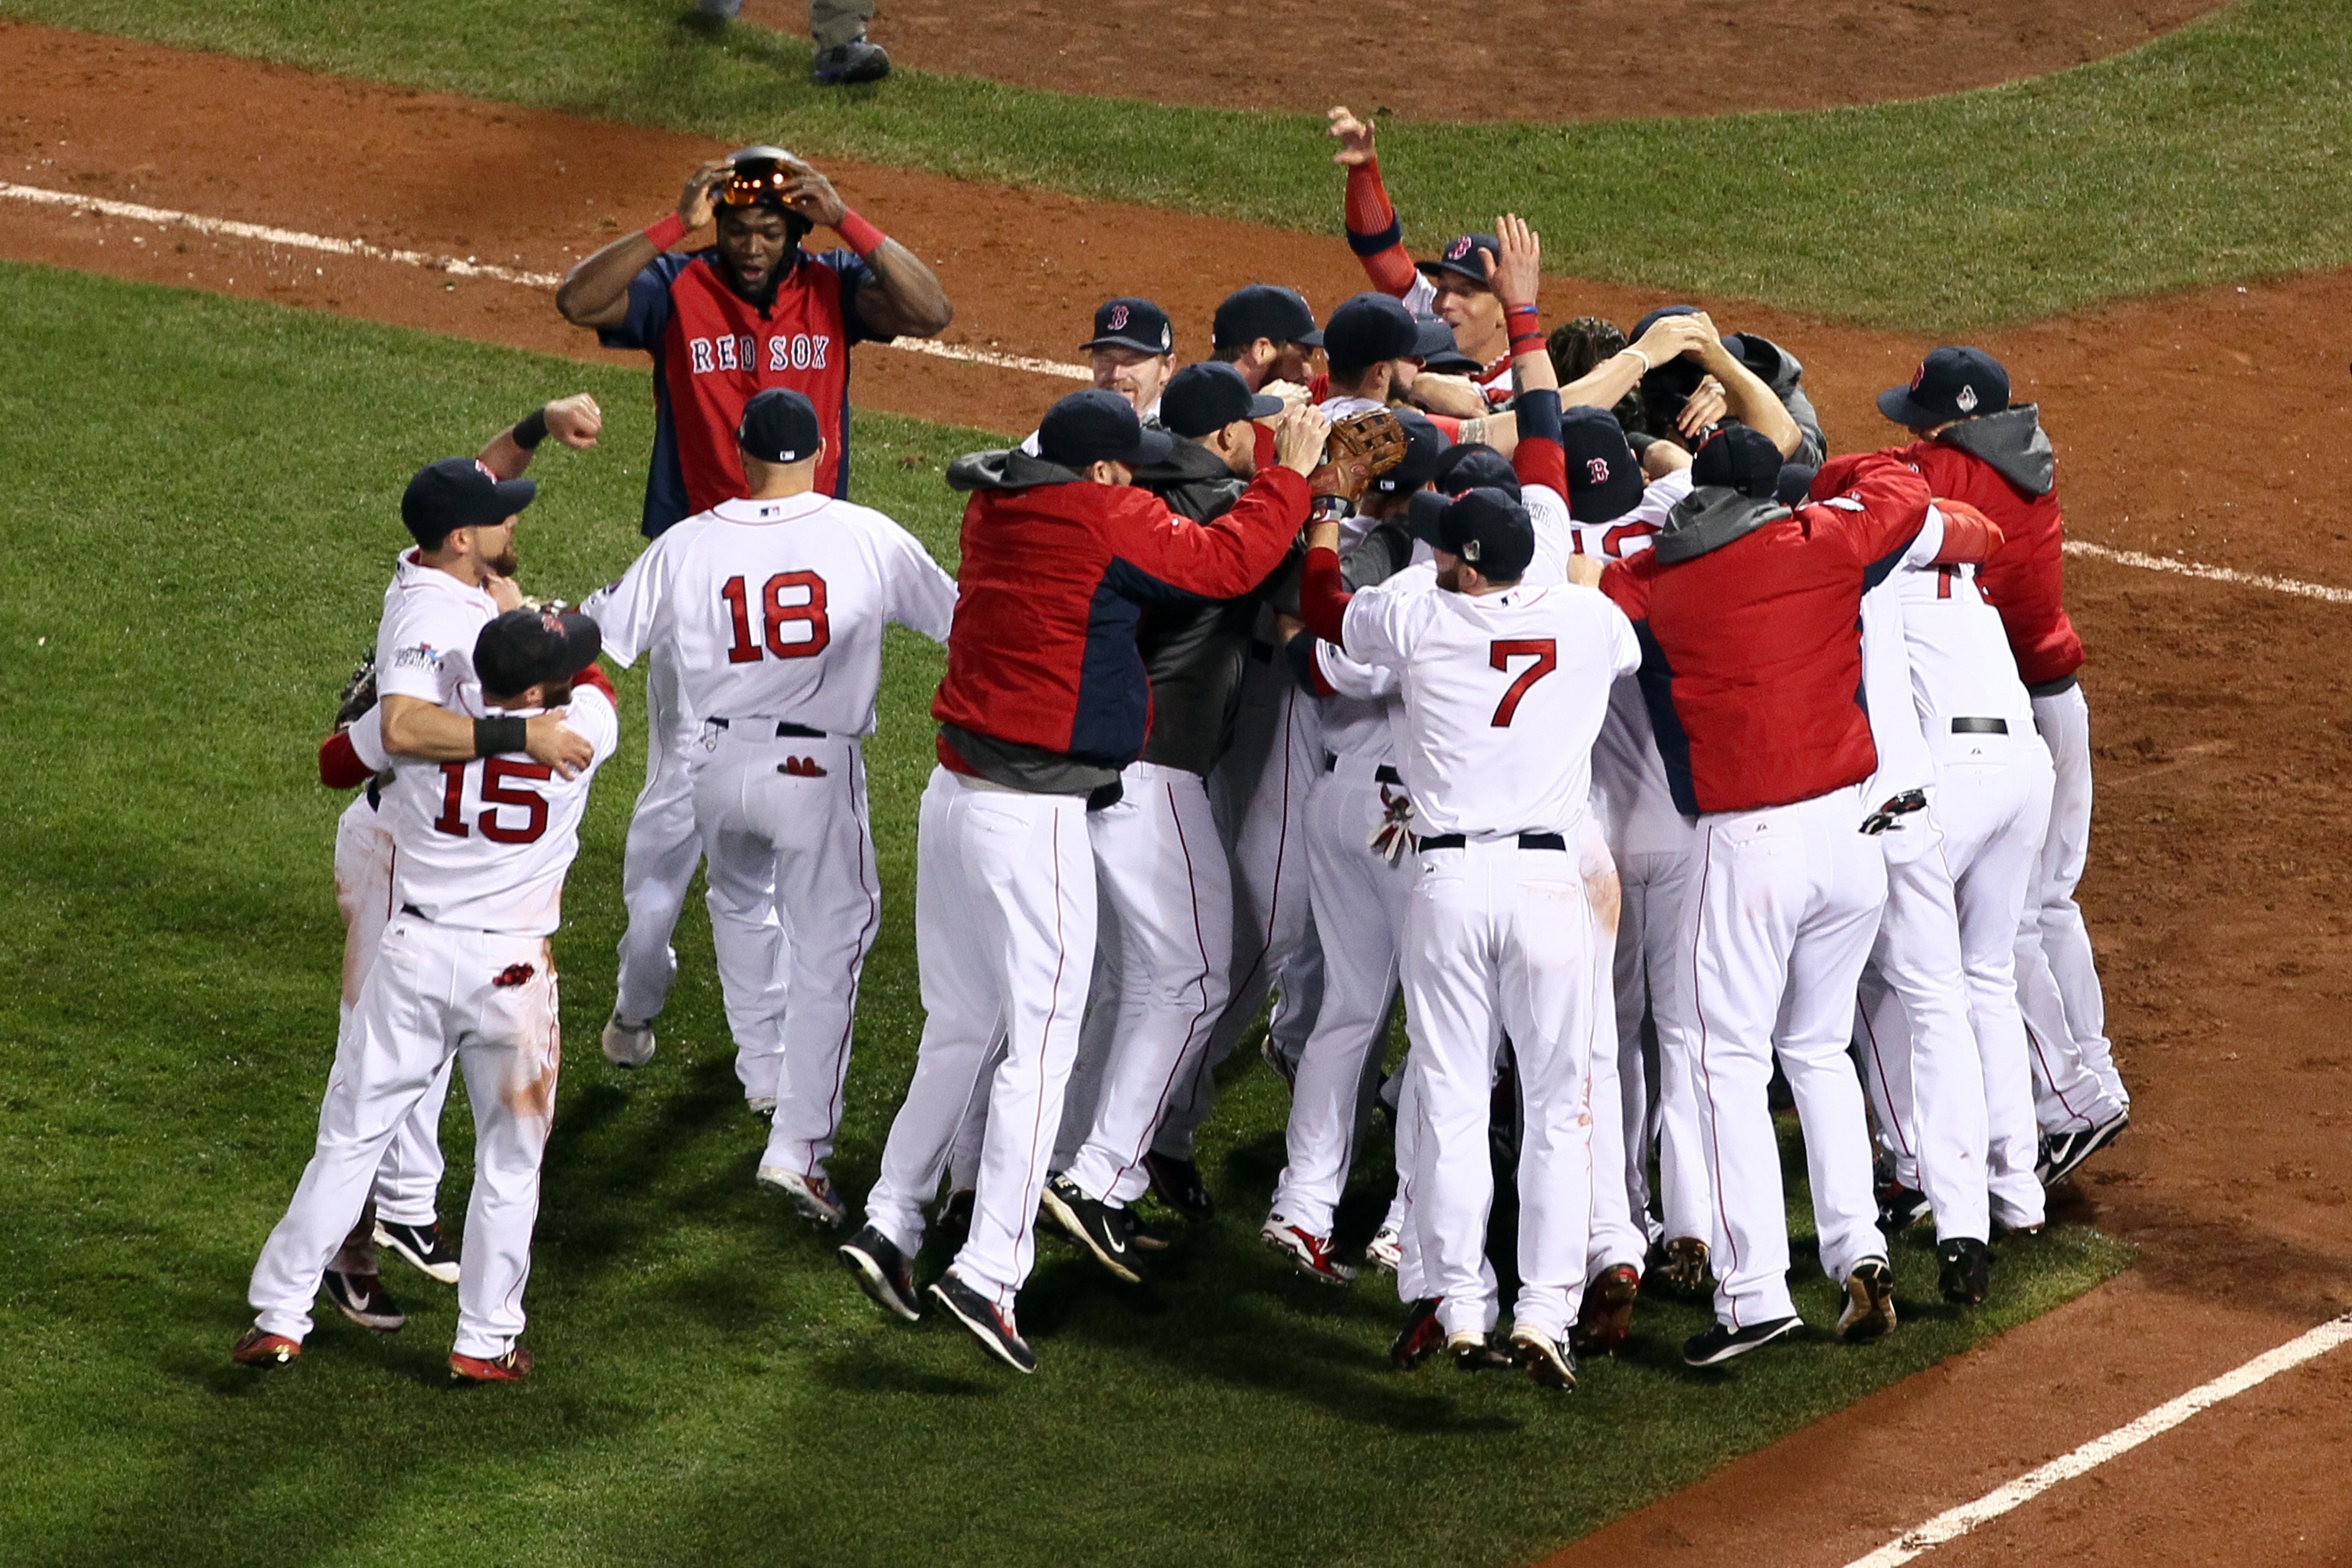 The Red Sox celebrate the first World Series title won in Boston since 1918 after defeating the St. Louis Cardinals in Game Six.